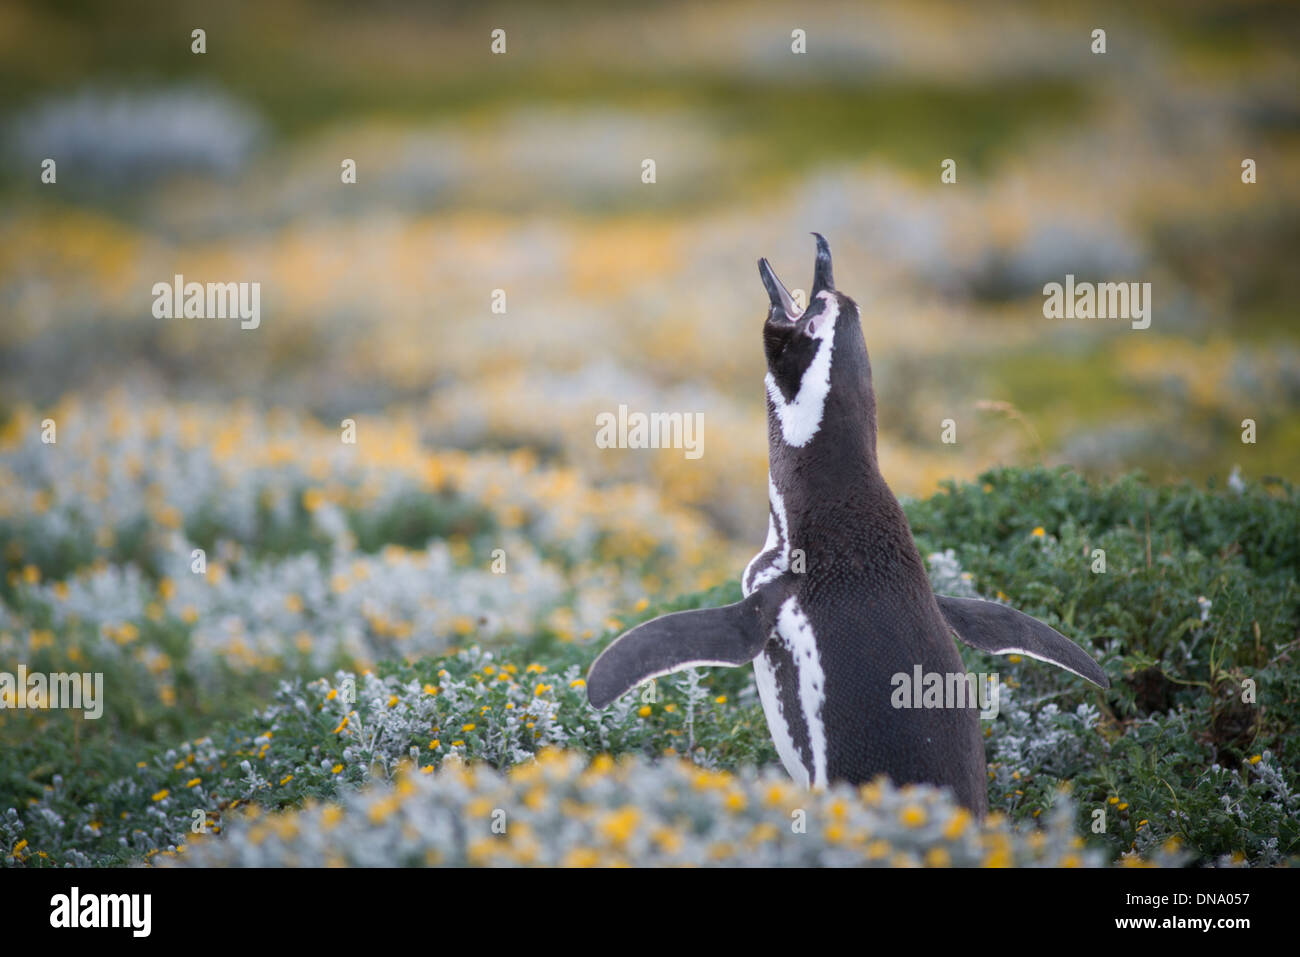 penguin flowers stock photos penguin flowers stock images alamy